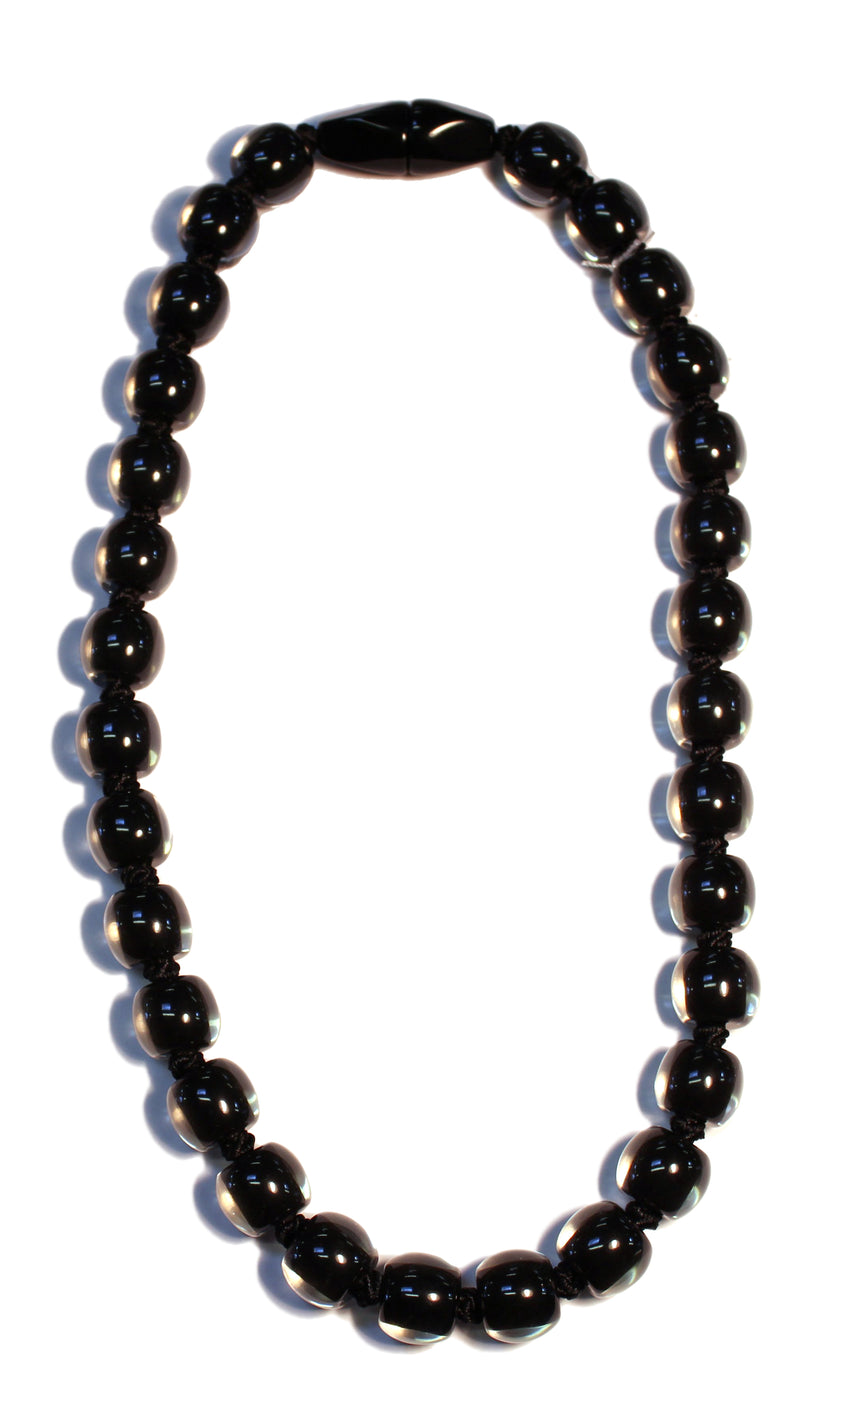 40101199010Q30 Colourful Beads Black Bead Black 9010 Q30